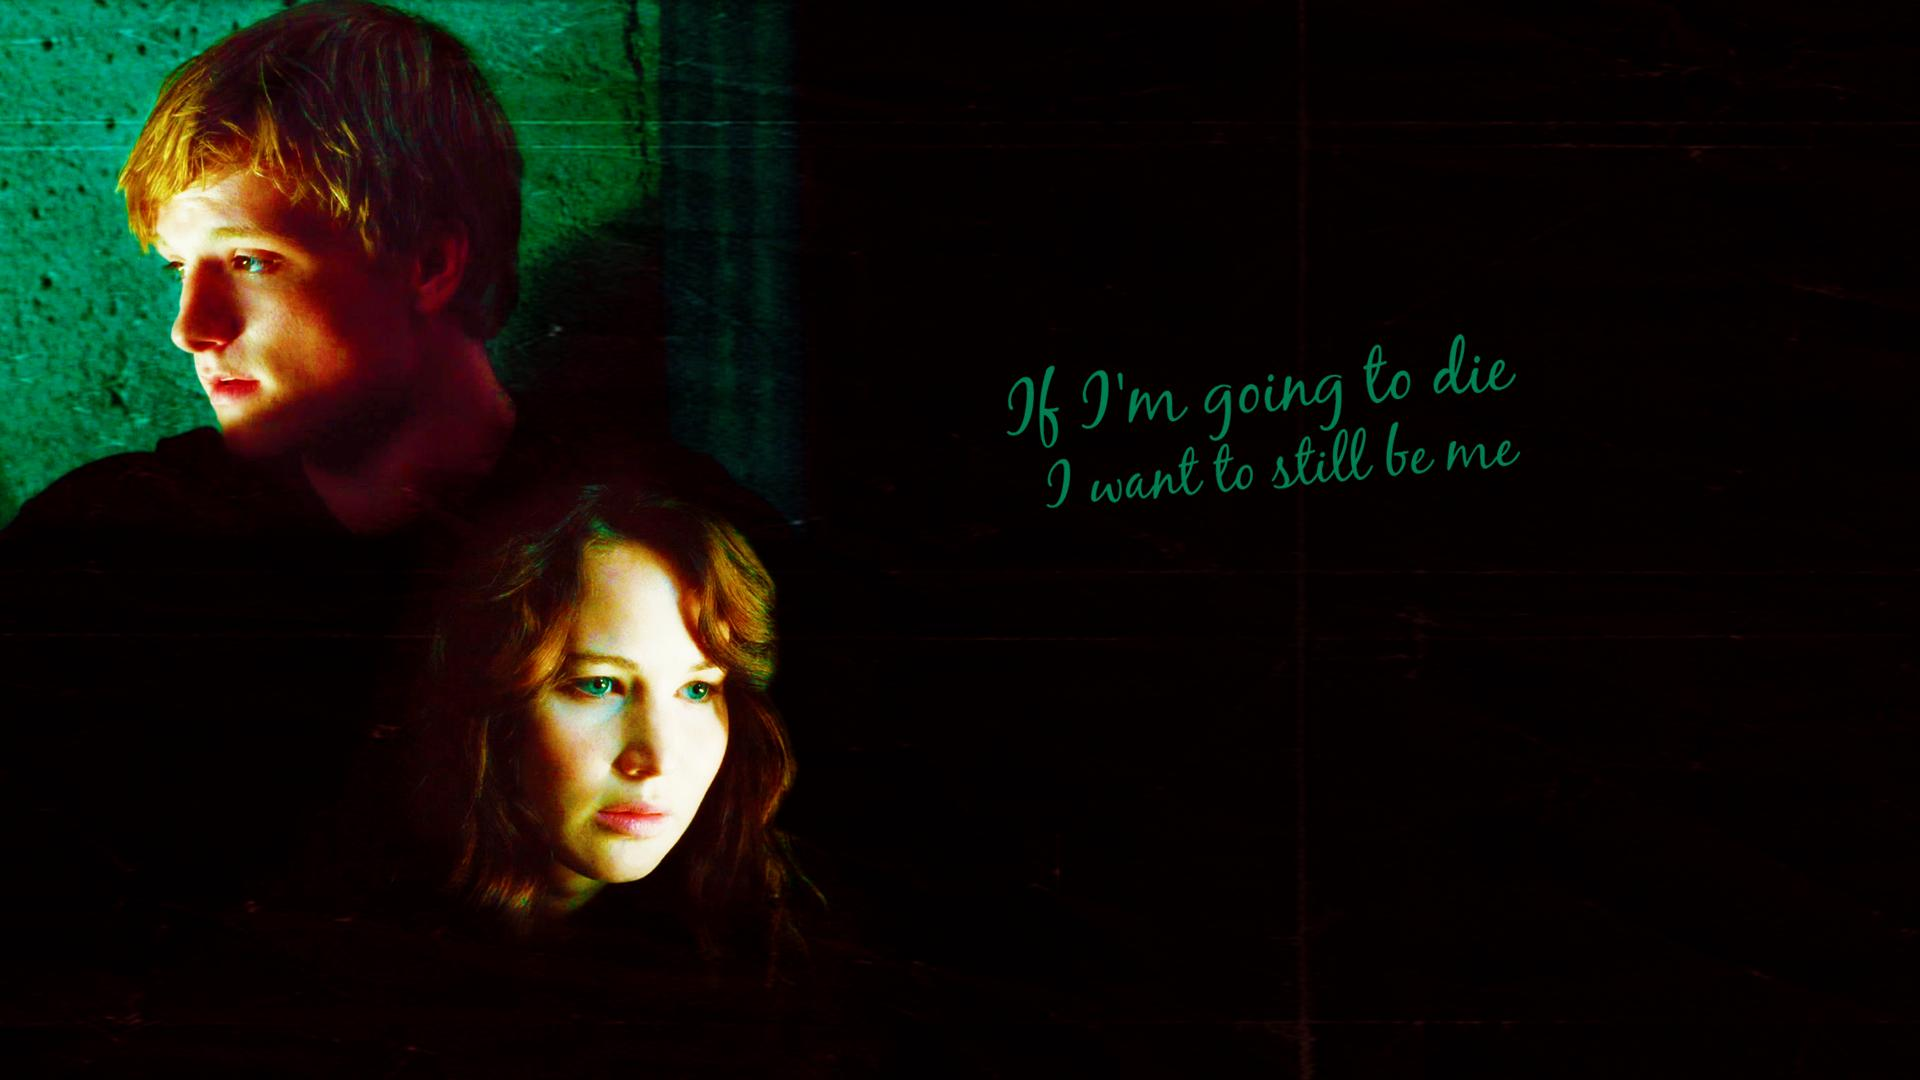 The Hunger Games The Hunger Games Wallpapers 1920x1080